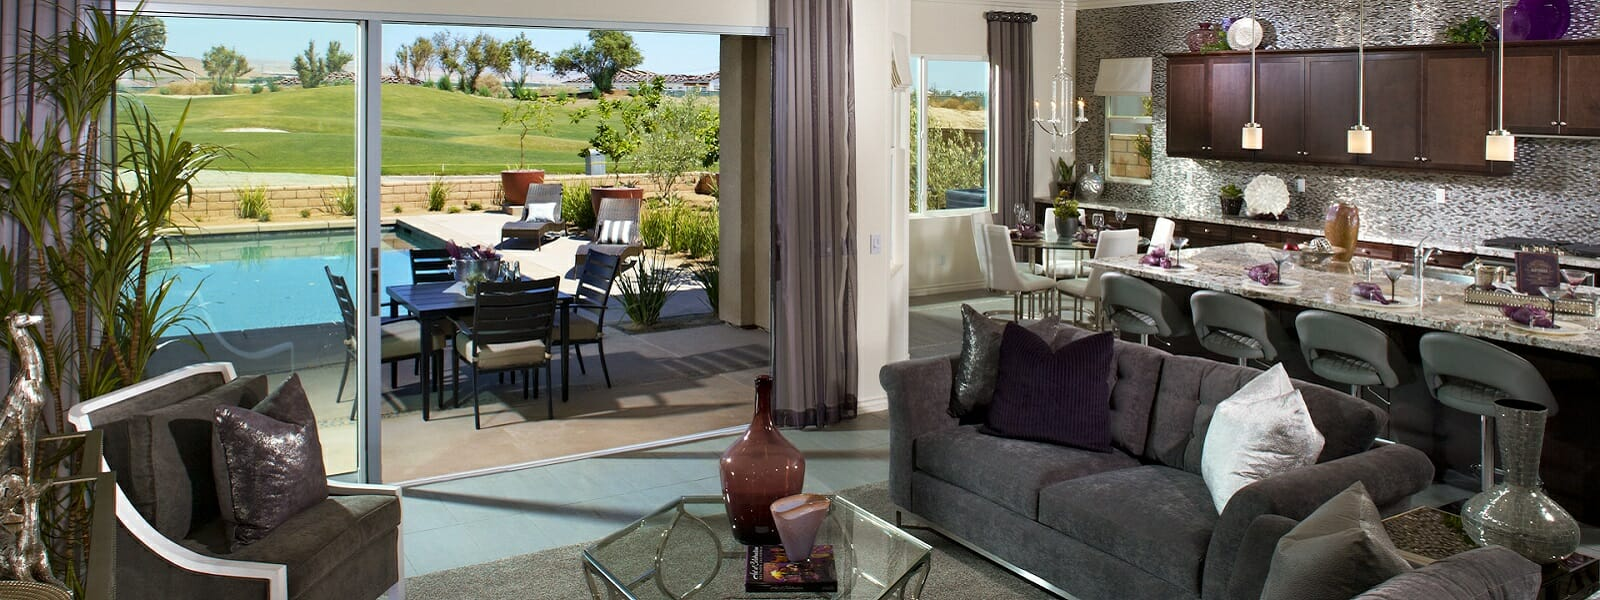 K Hov Terra Lago | California Gated 55 Plus Communities CA Retire